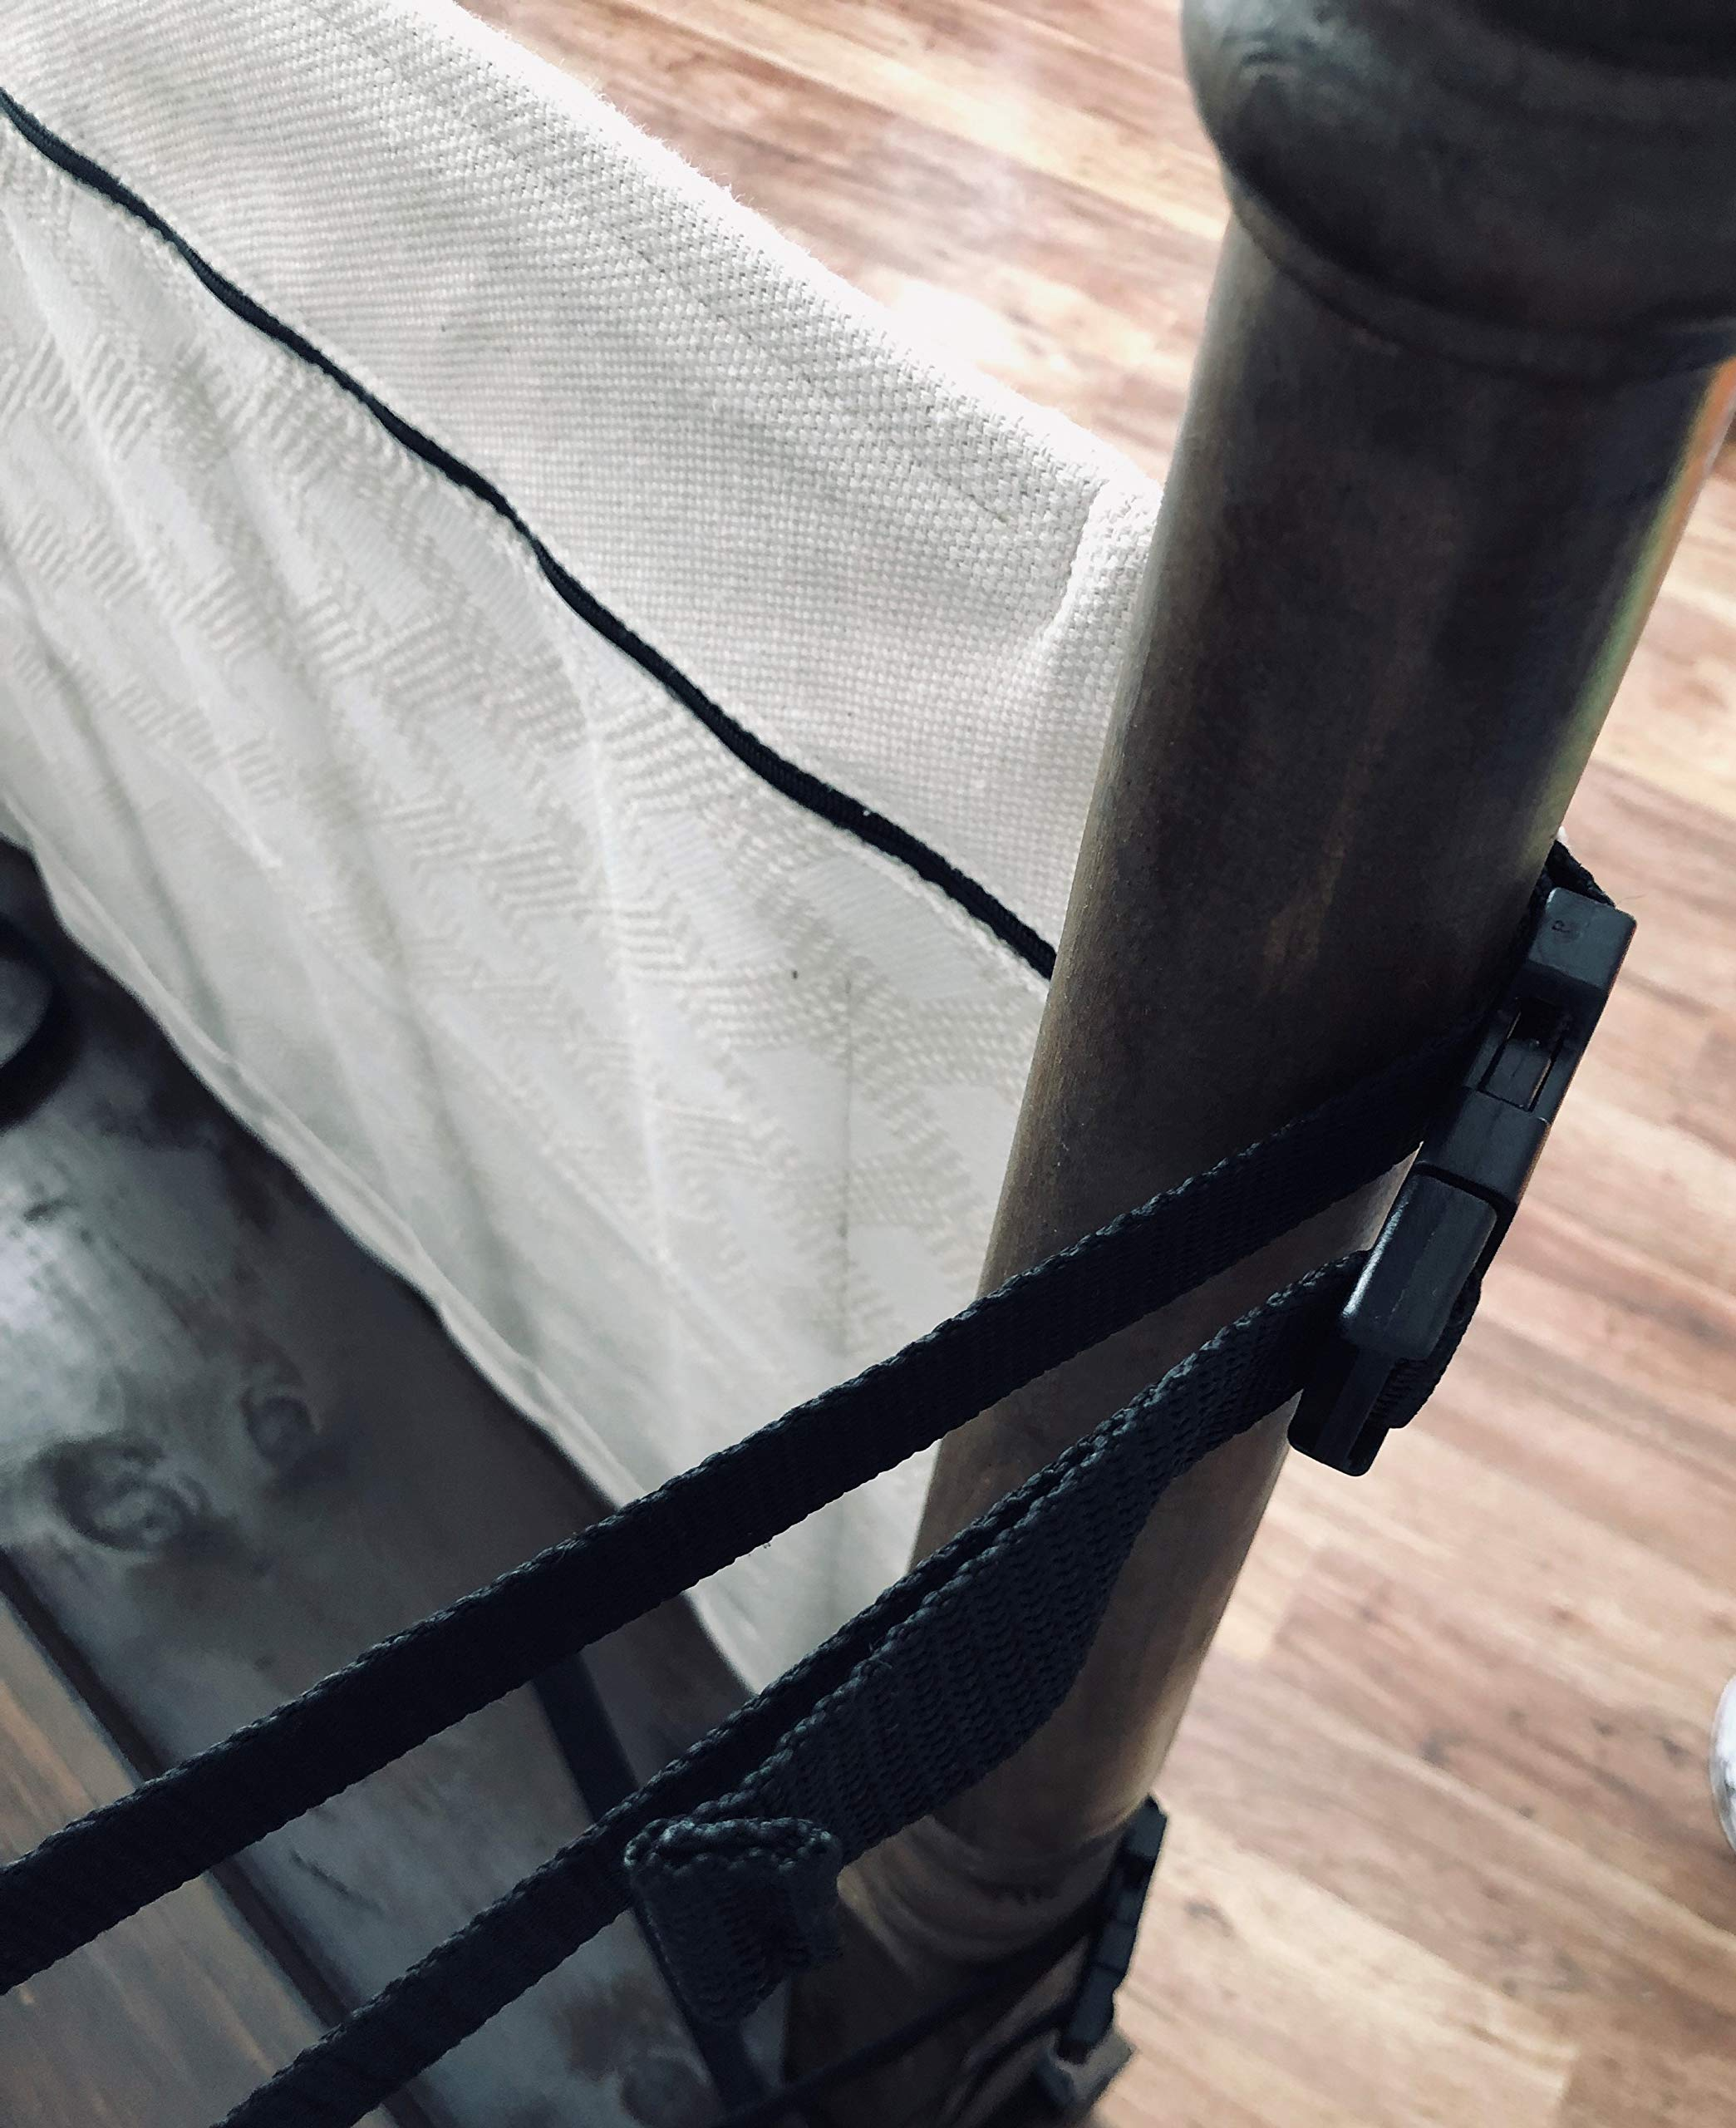 The Stair Barrier Baby and Pet Gate: No-Drill Portable Banister to Banister Baby Gates & Travel Bag - Safety Gates for Kids or Dogs - Fabric Baby Gate for Stairs with Banisters, New 2019 by THE STAIR BARRIER KEEPING CHILDREN AND PETS OFF THE STAIRS (Image #8)